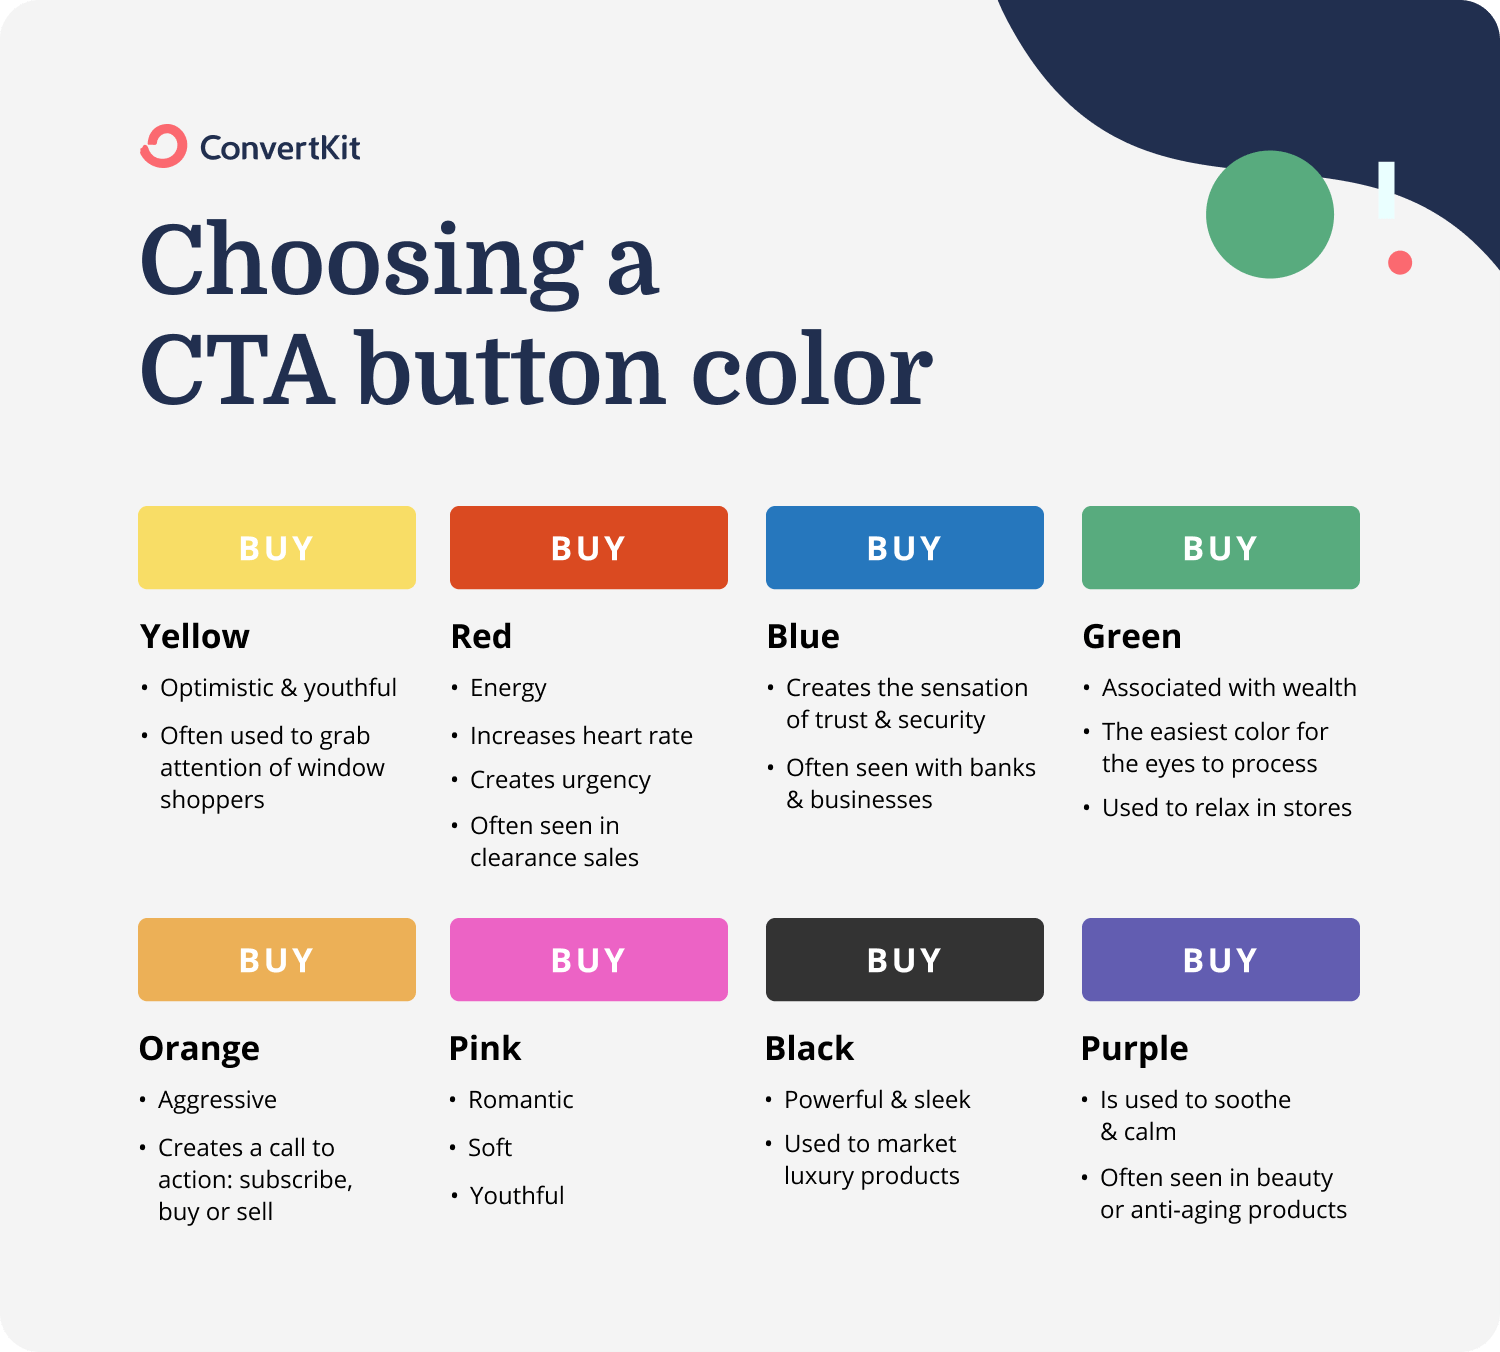 Choosing a color for your CTA landing page button